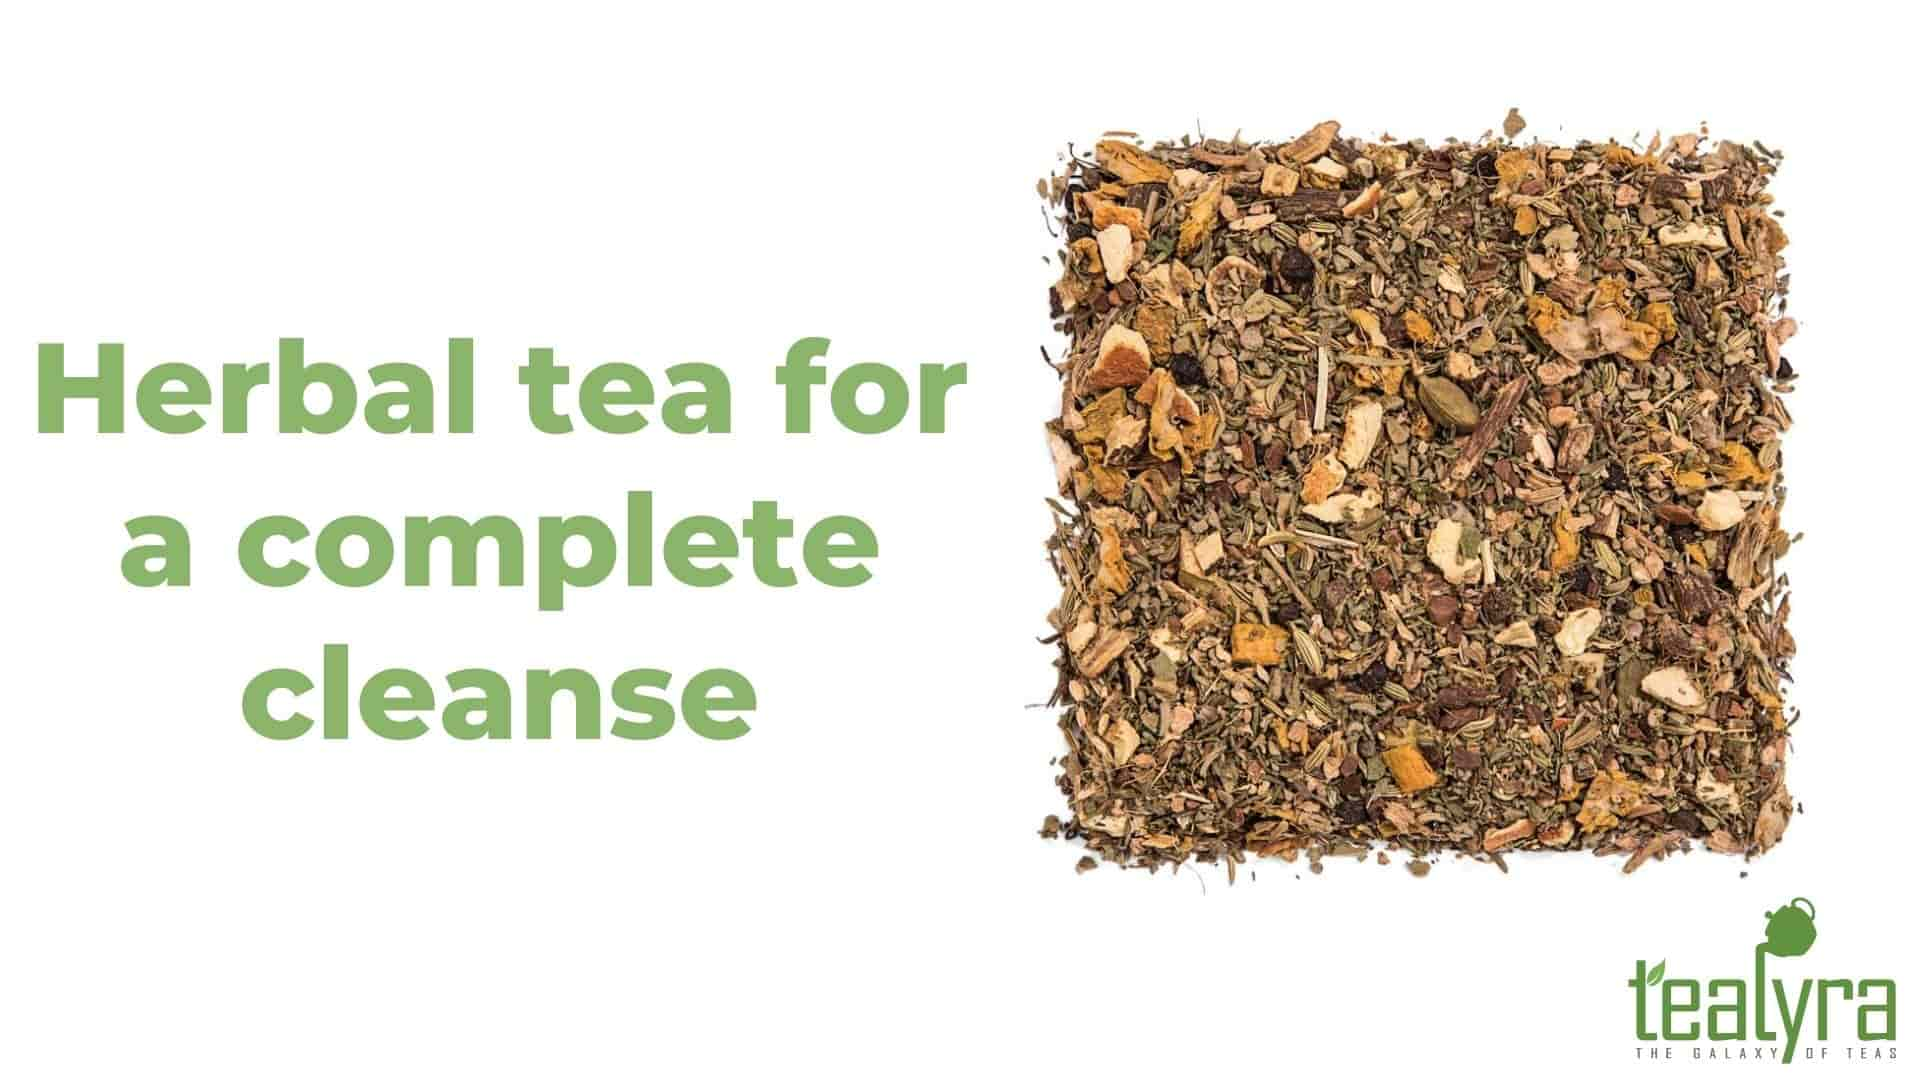 Image-herbal-tea-for-a-complete-cleanse